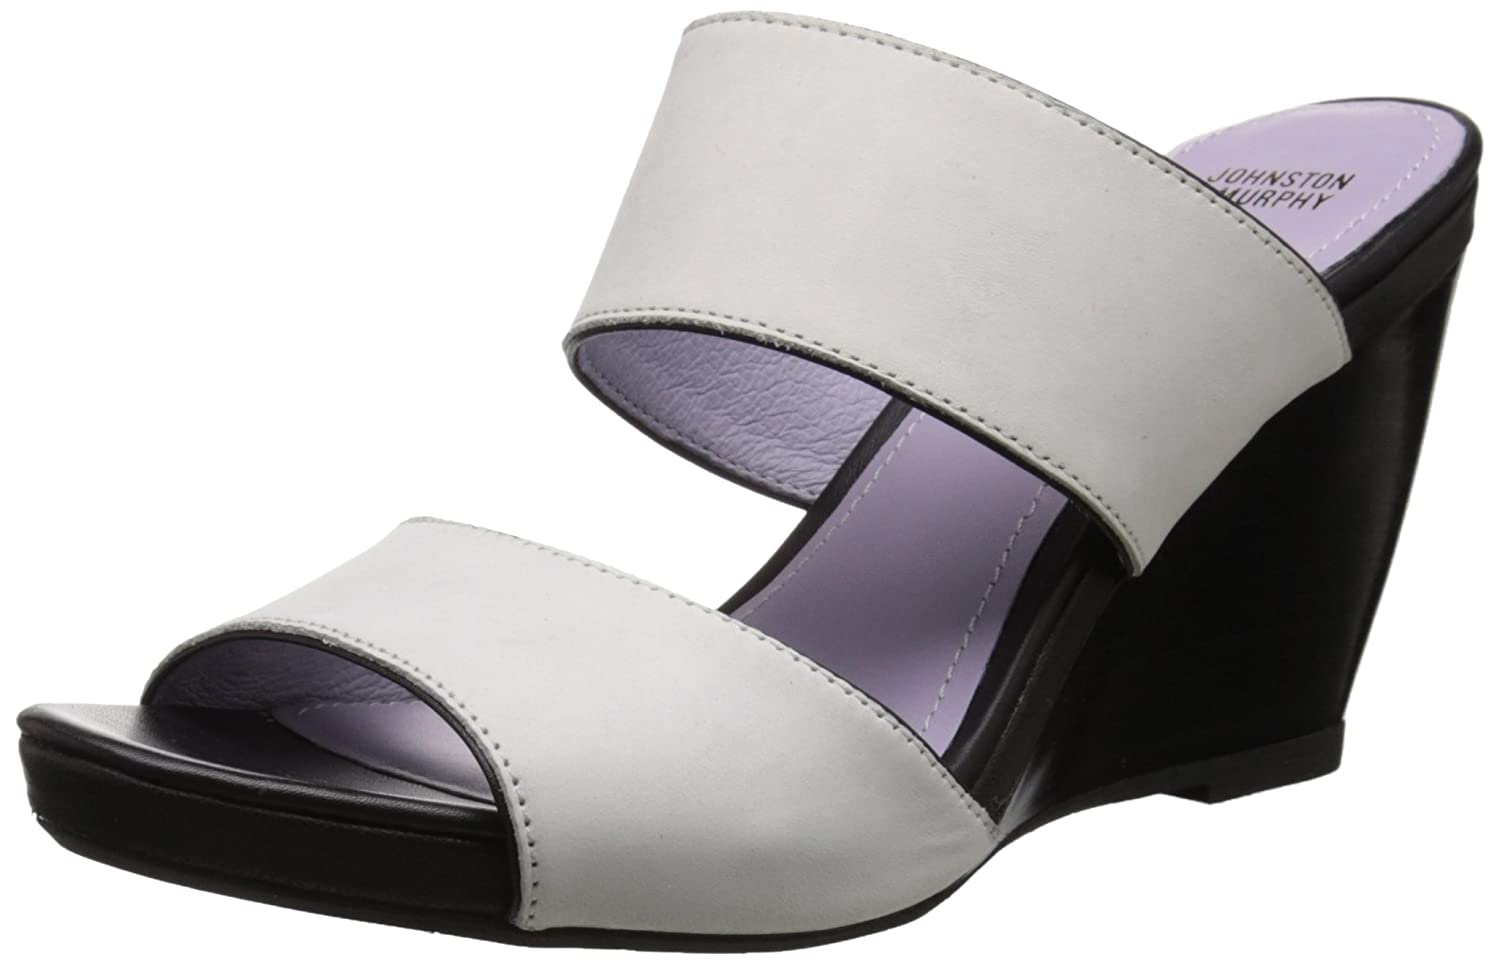 Johnston & Murphy Women's Nisha Wedge B(M) Slide Sandal B015GIL1LC 8.5 B(M) Wedge US|Off White 1ddffc